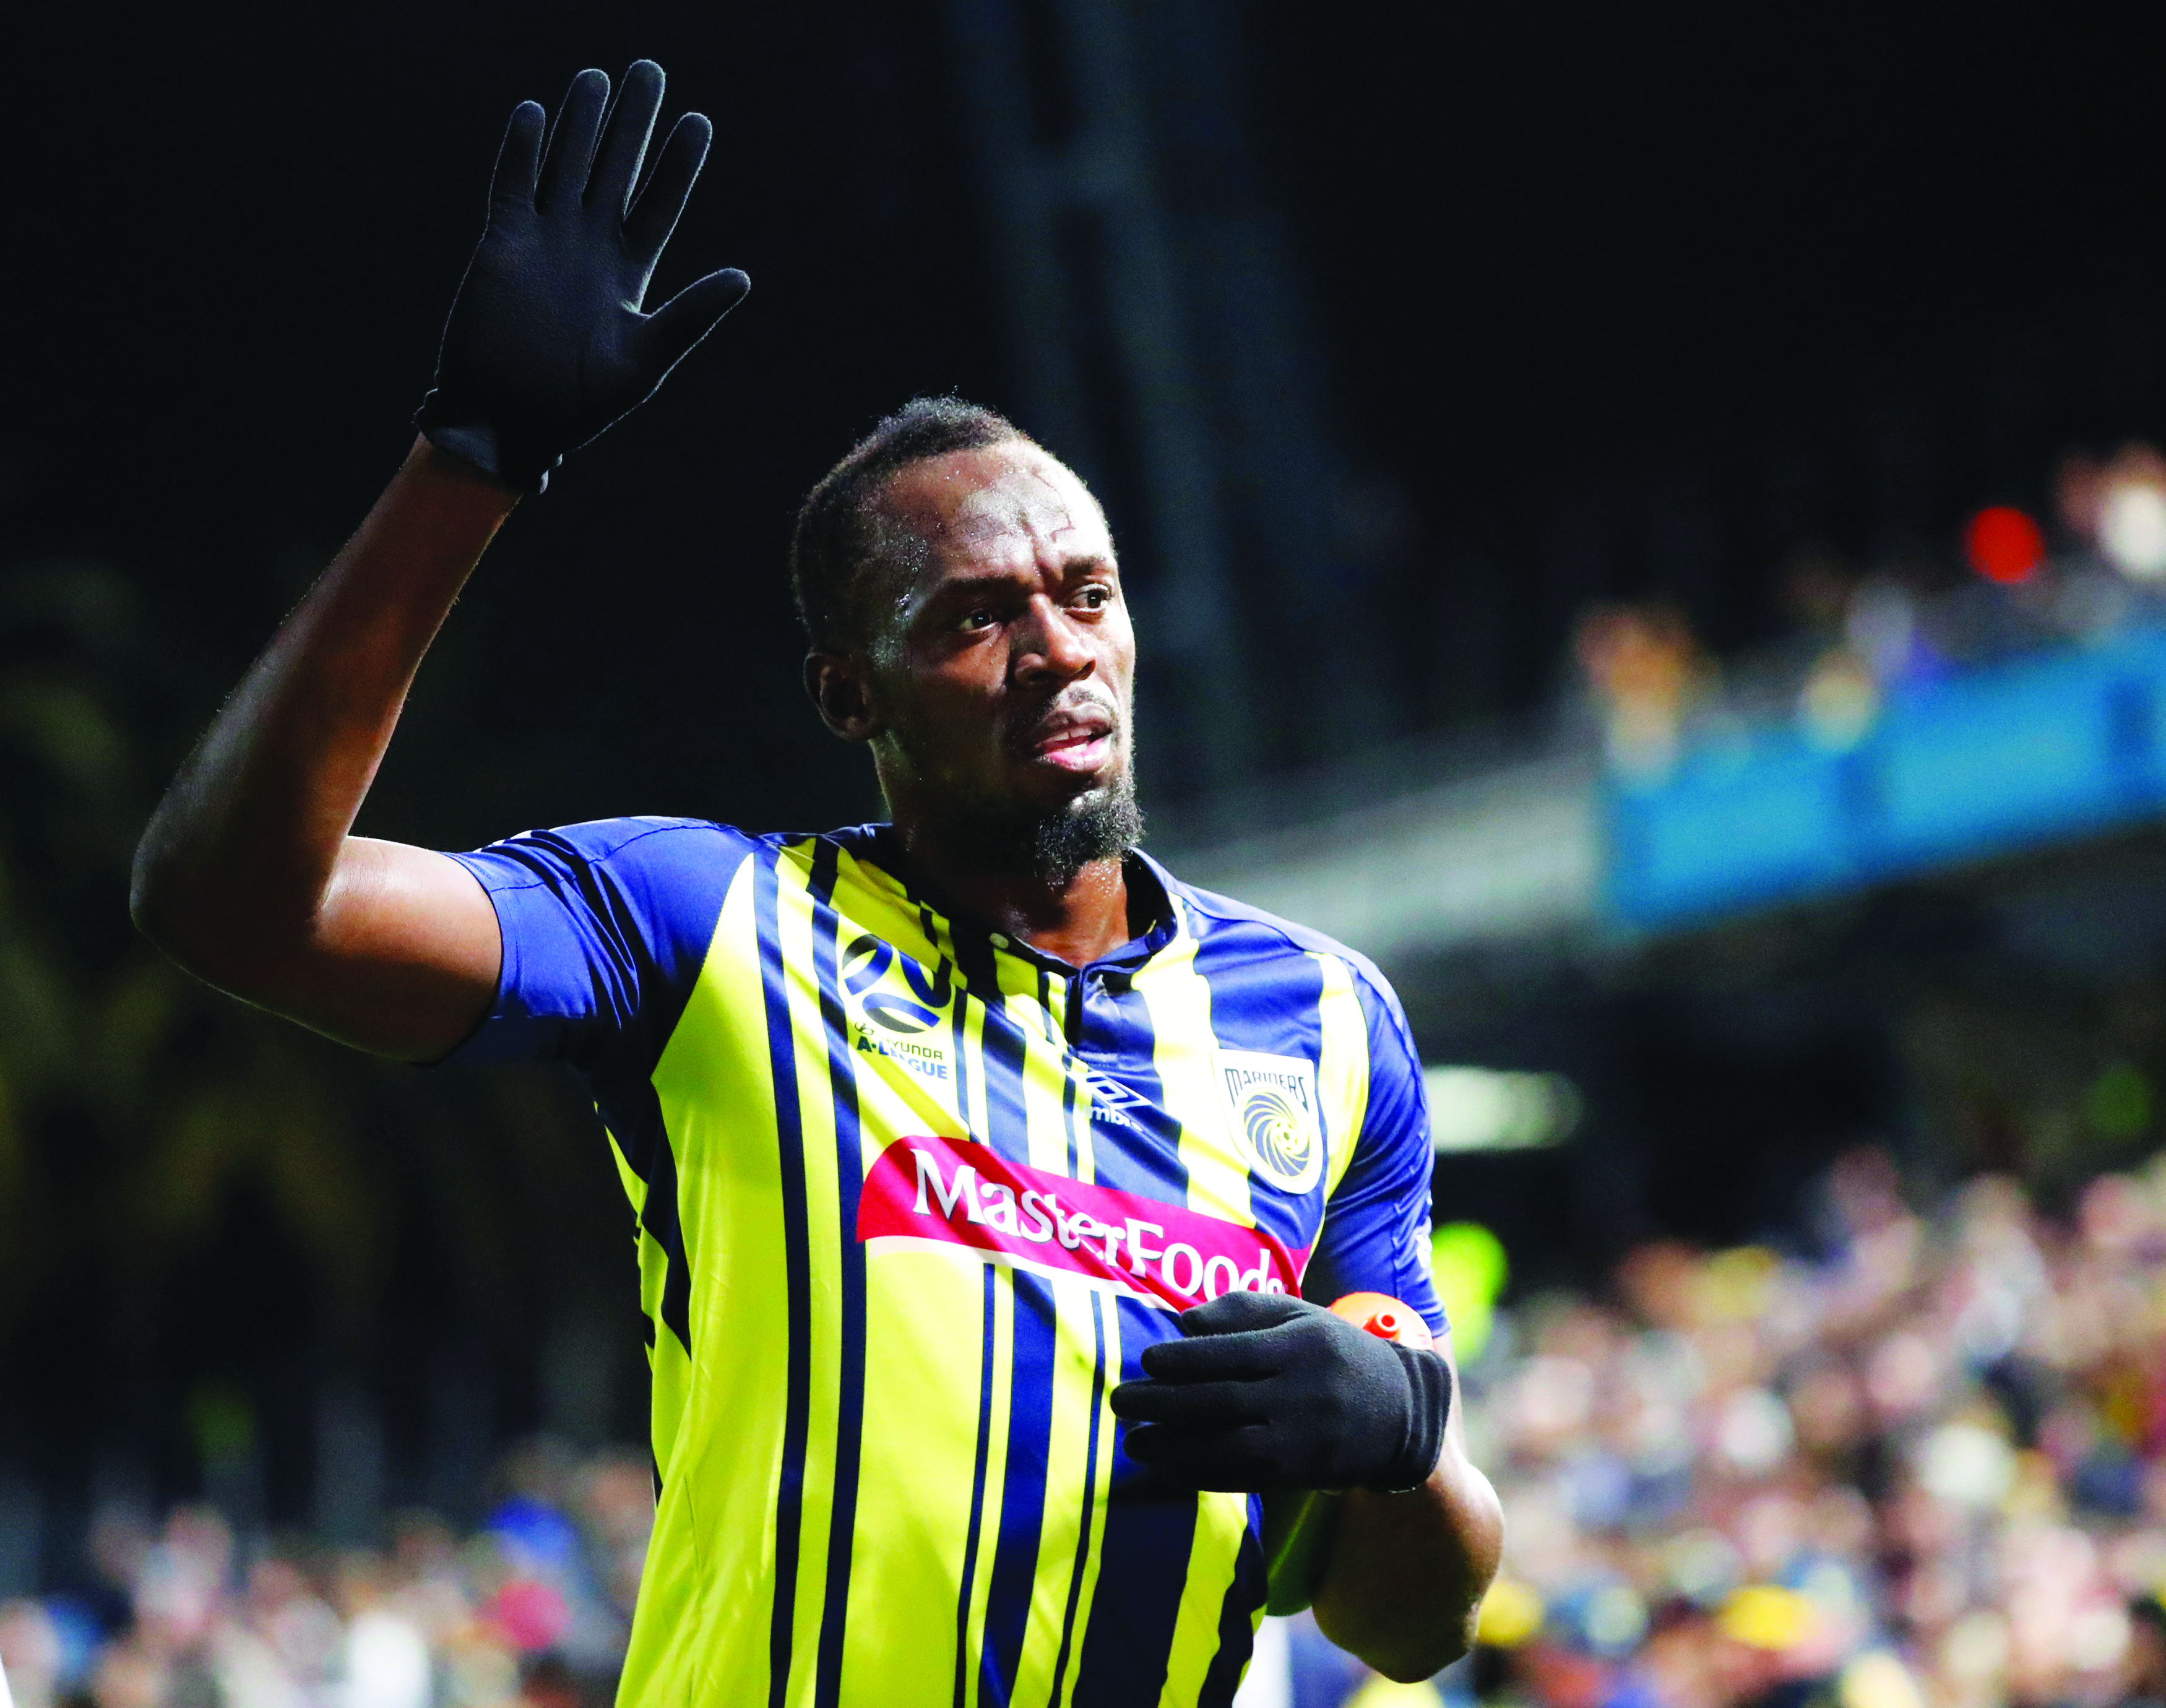 Football: A-League club confirm offer to Olympic champion Bolt